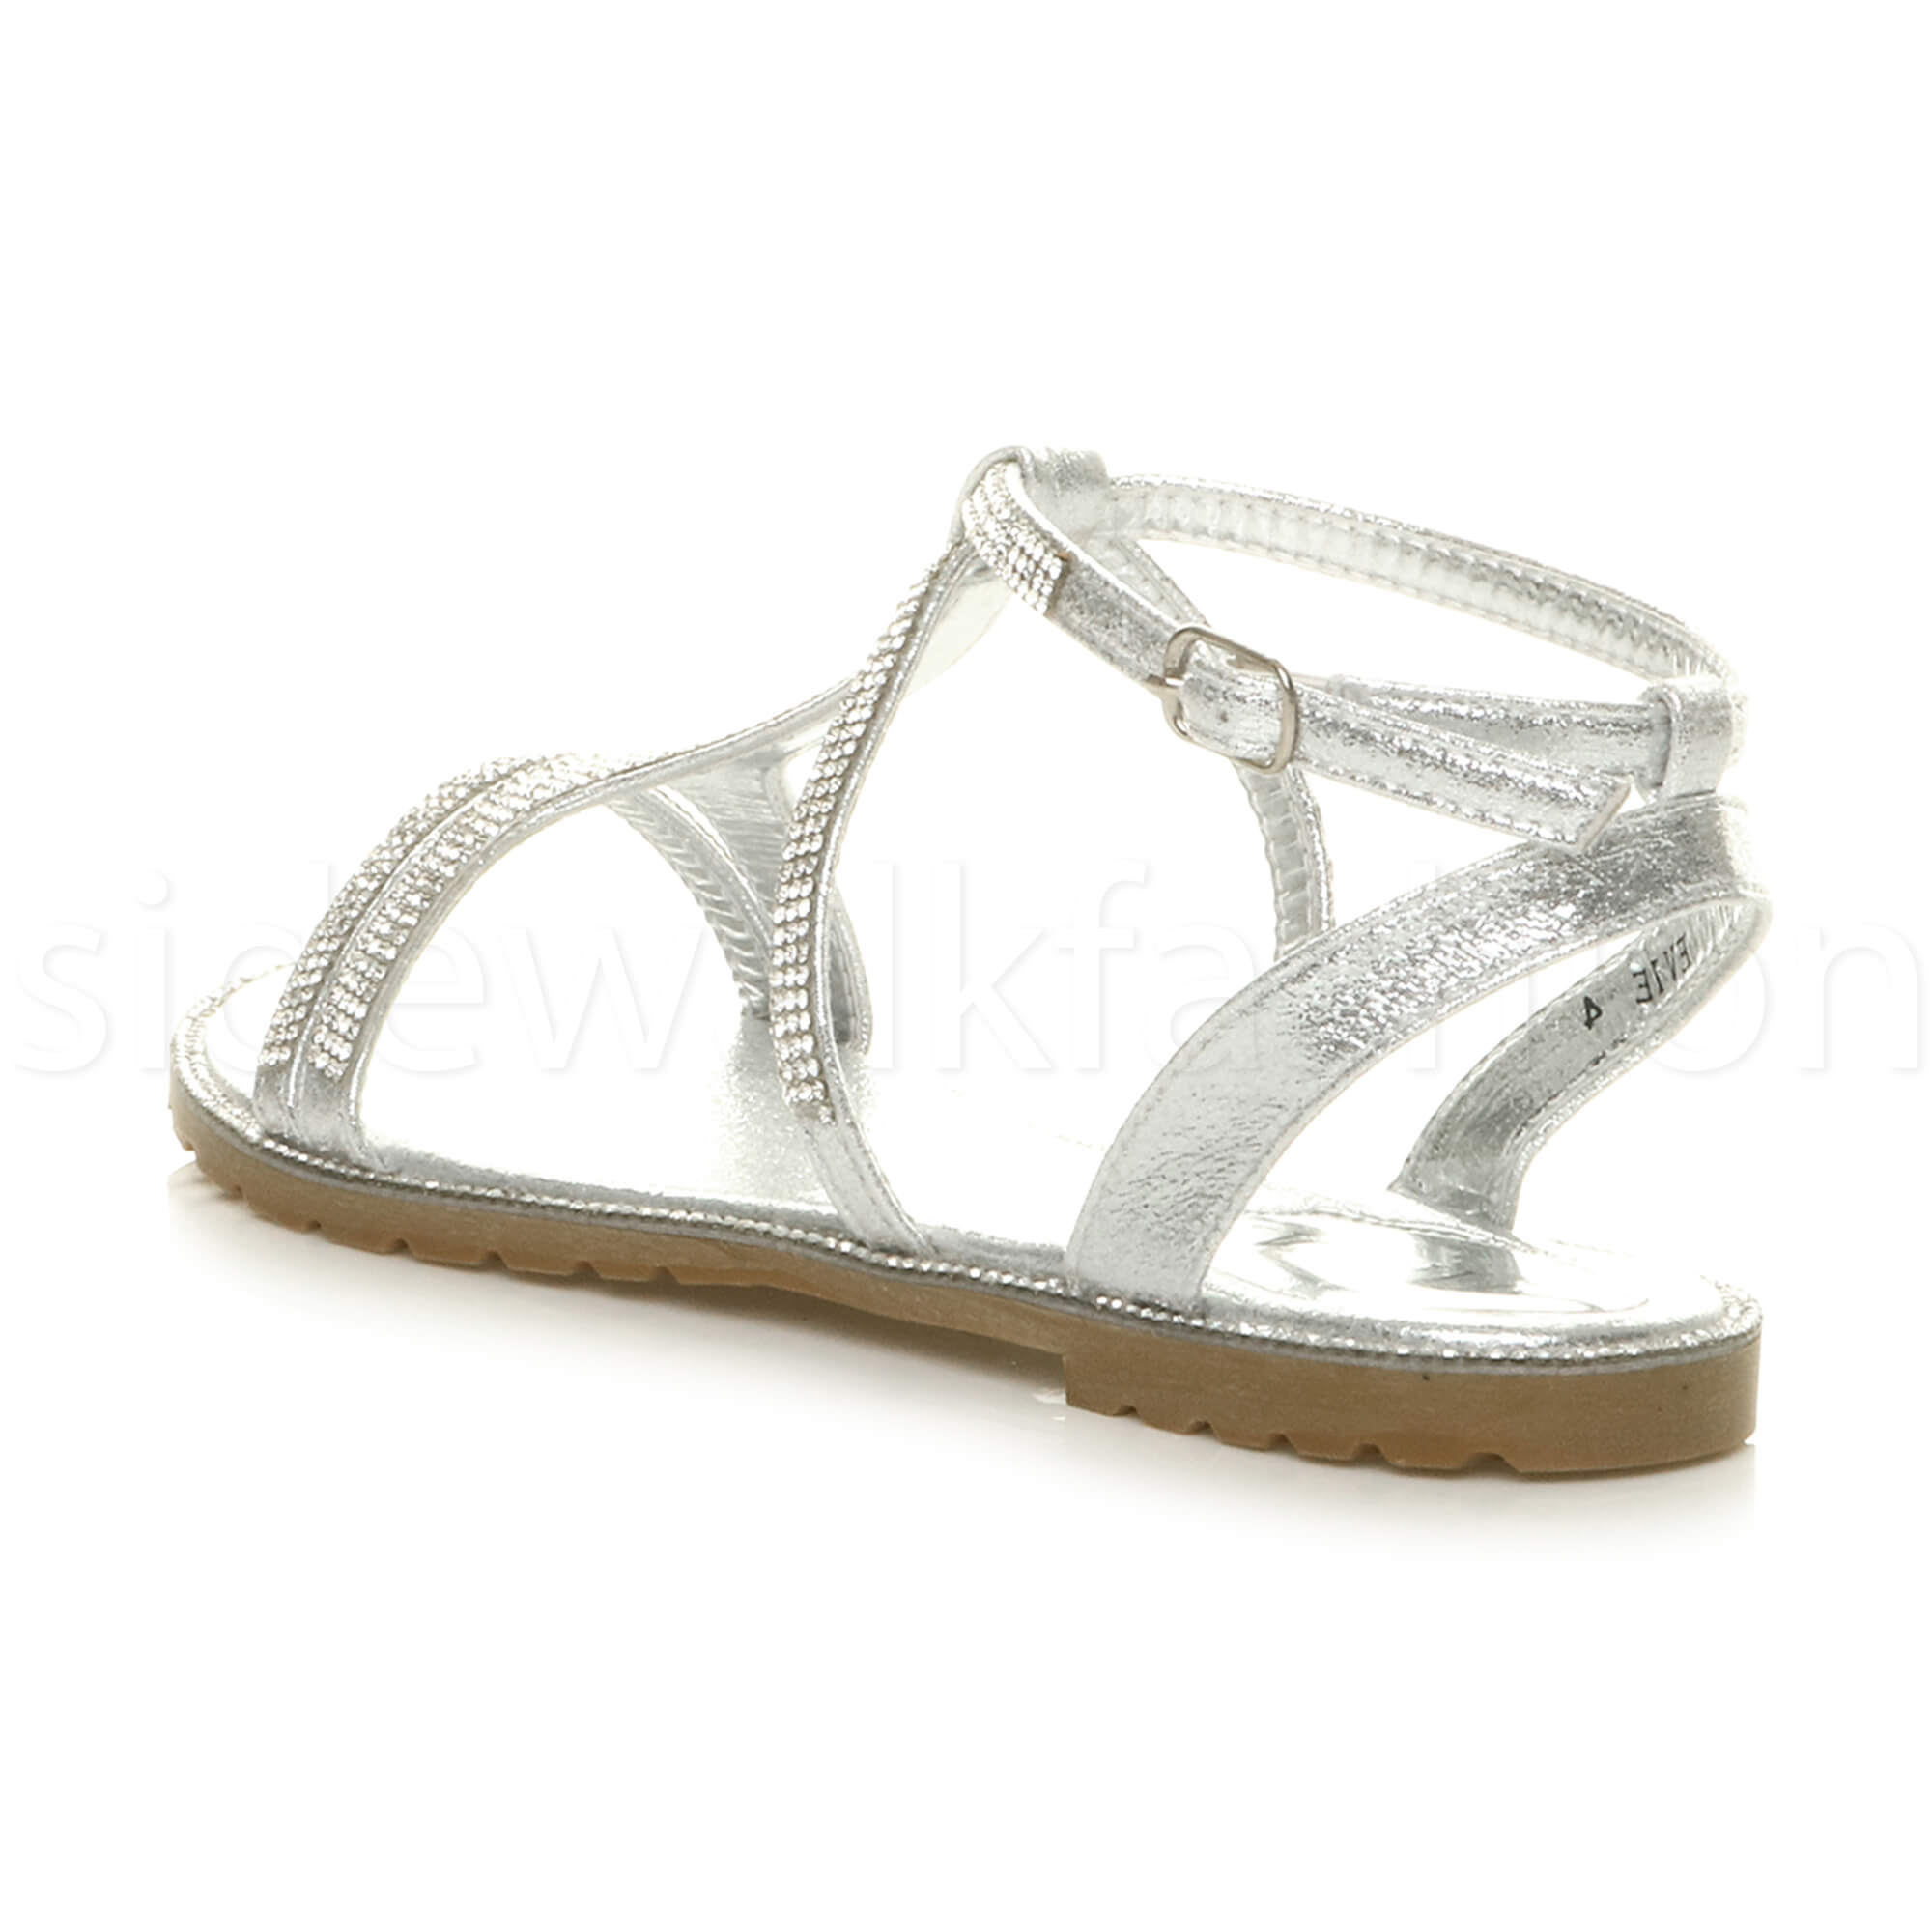 e7d30aab5ce3 Womens ladies flat embellished diamante sparkly strappy t-bar ...